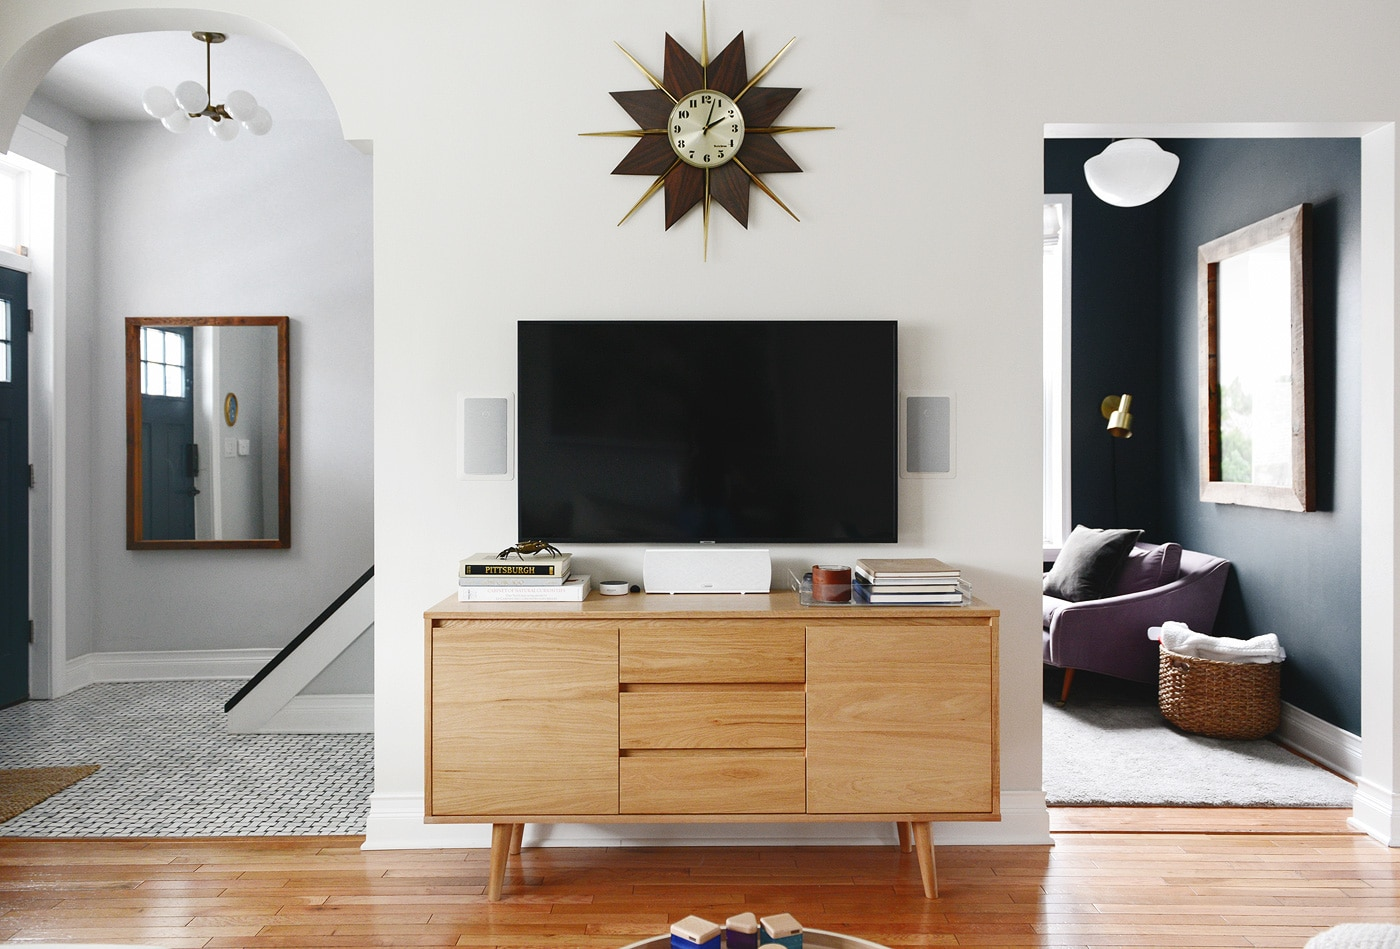 Mid century media console in neutral living room // How to keep media console organized // via Yellow Brick Home